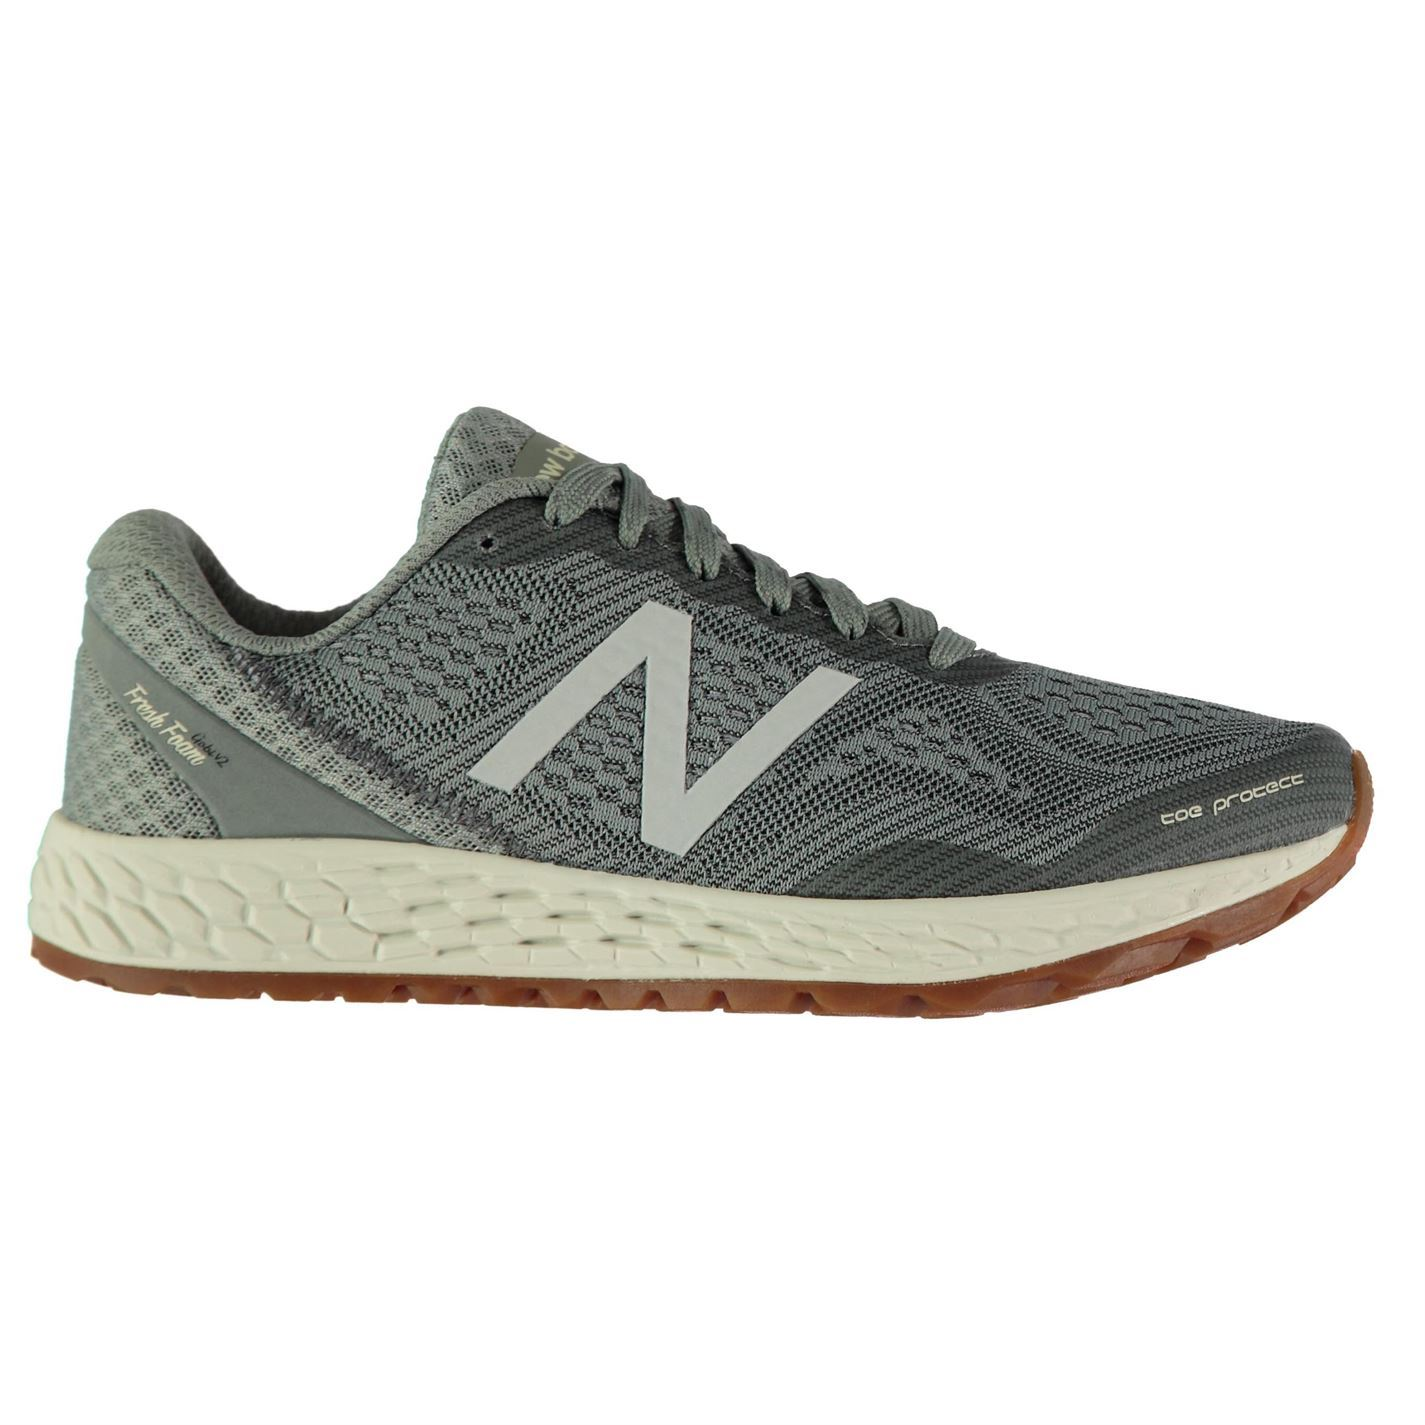 New Balance Lace Damenschuhe Gobi v2 Trail Running Schuhes Lace Balance Up Breathable Mesh Panels 483295